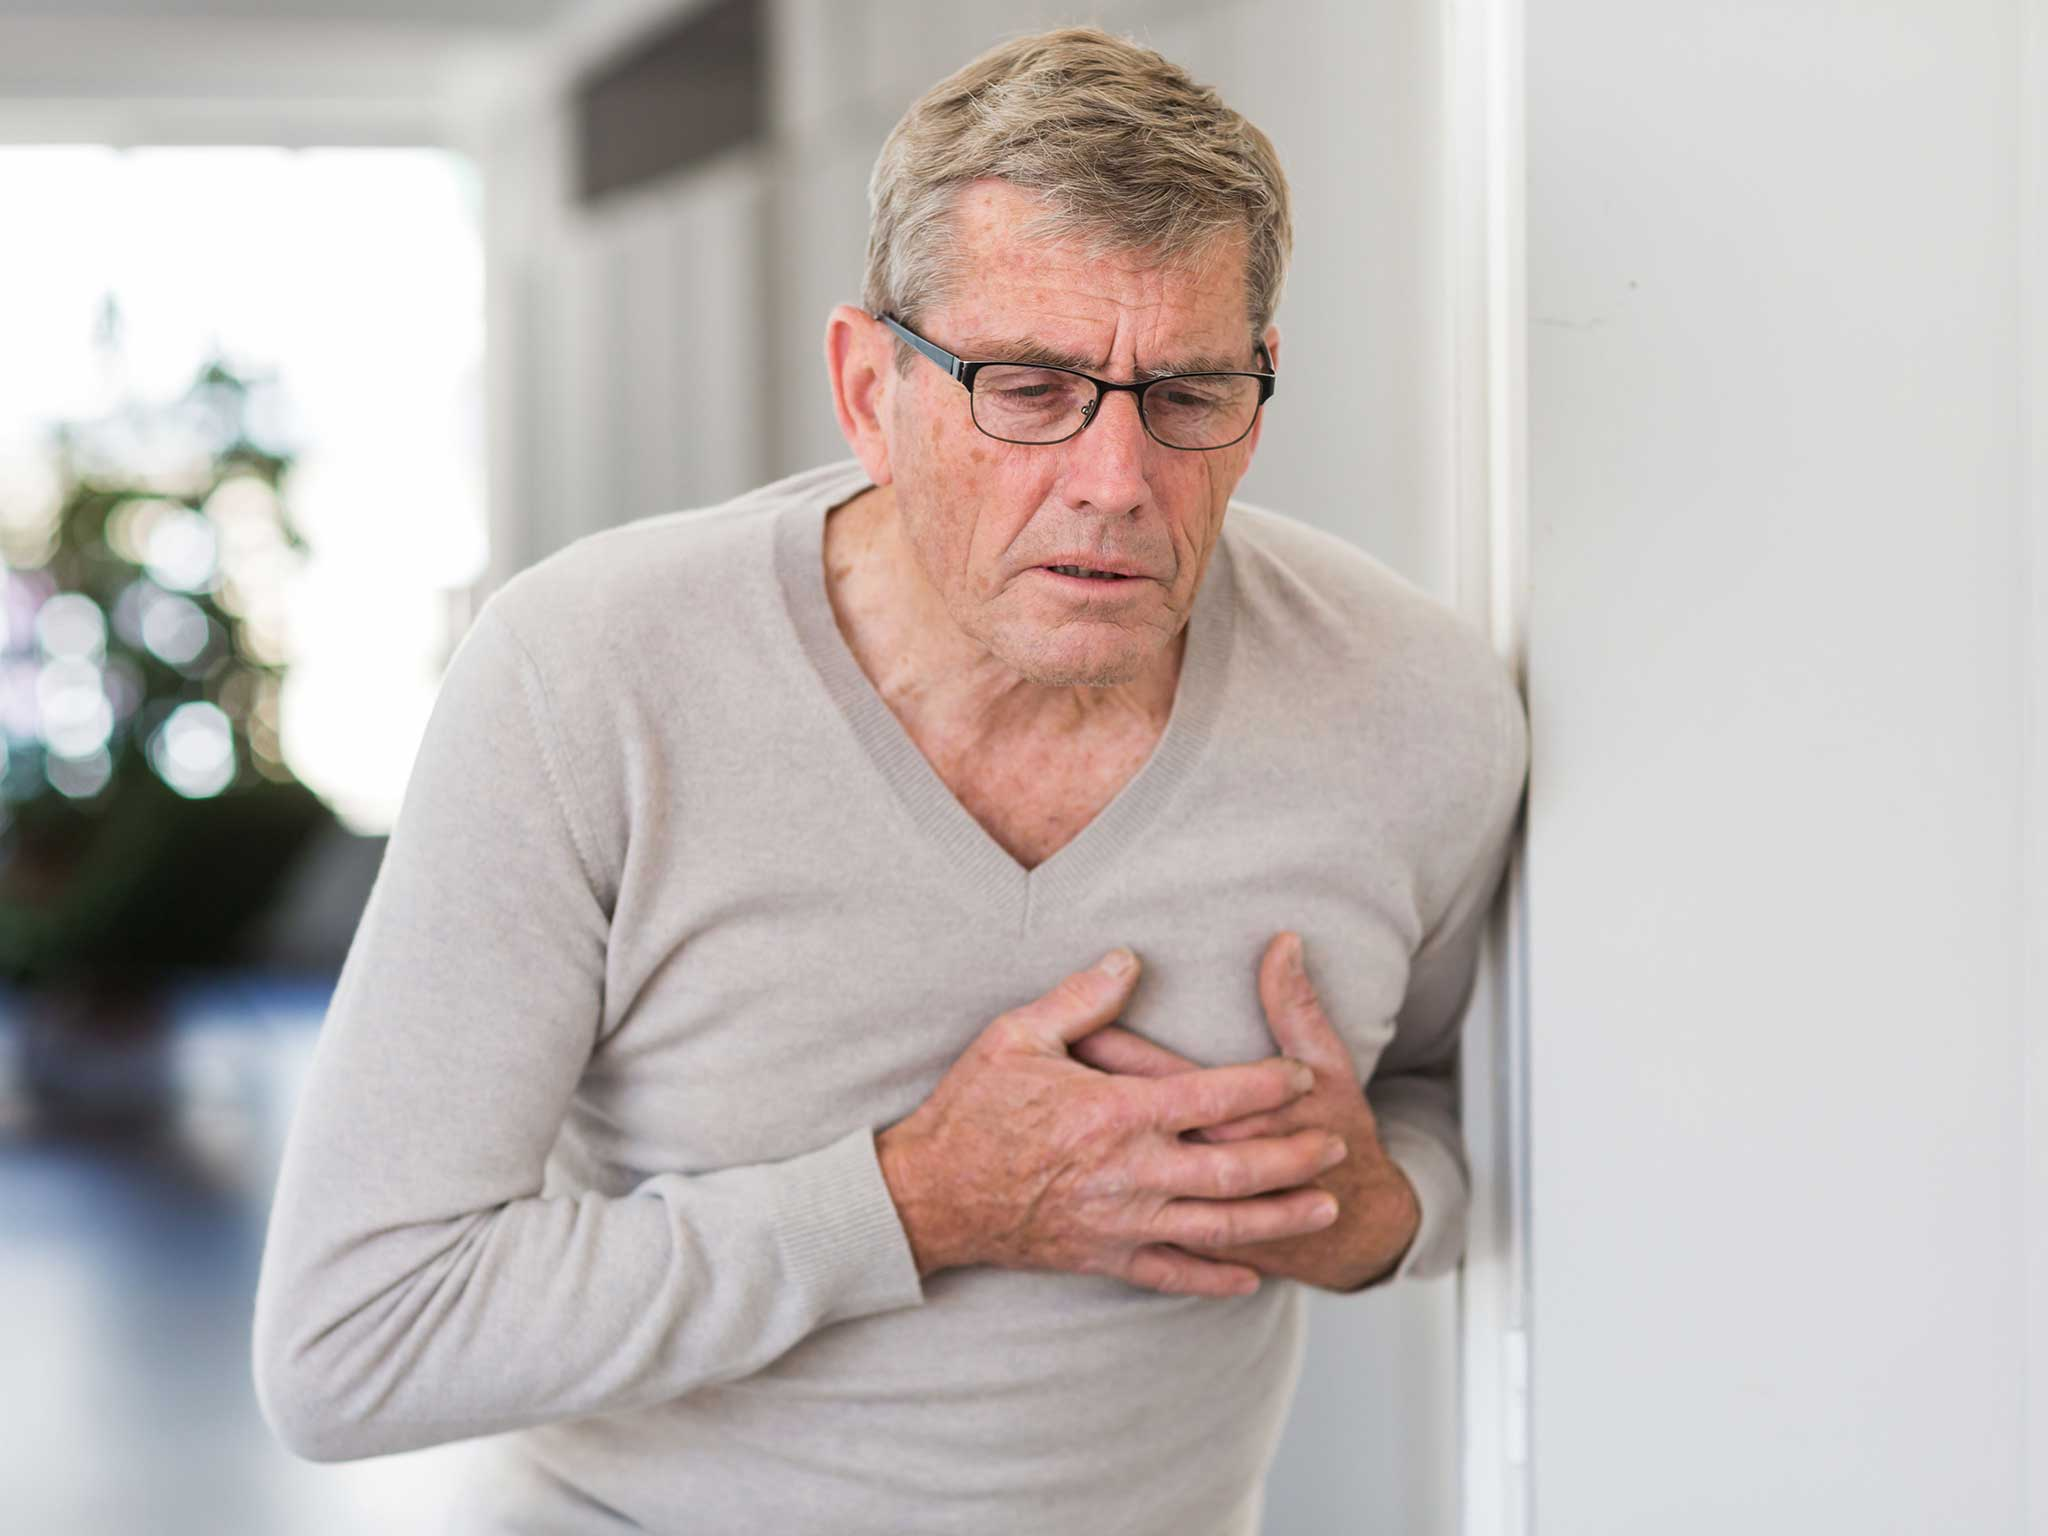 NHS calculator which predicts when you might suffer heart attack launched